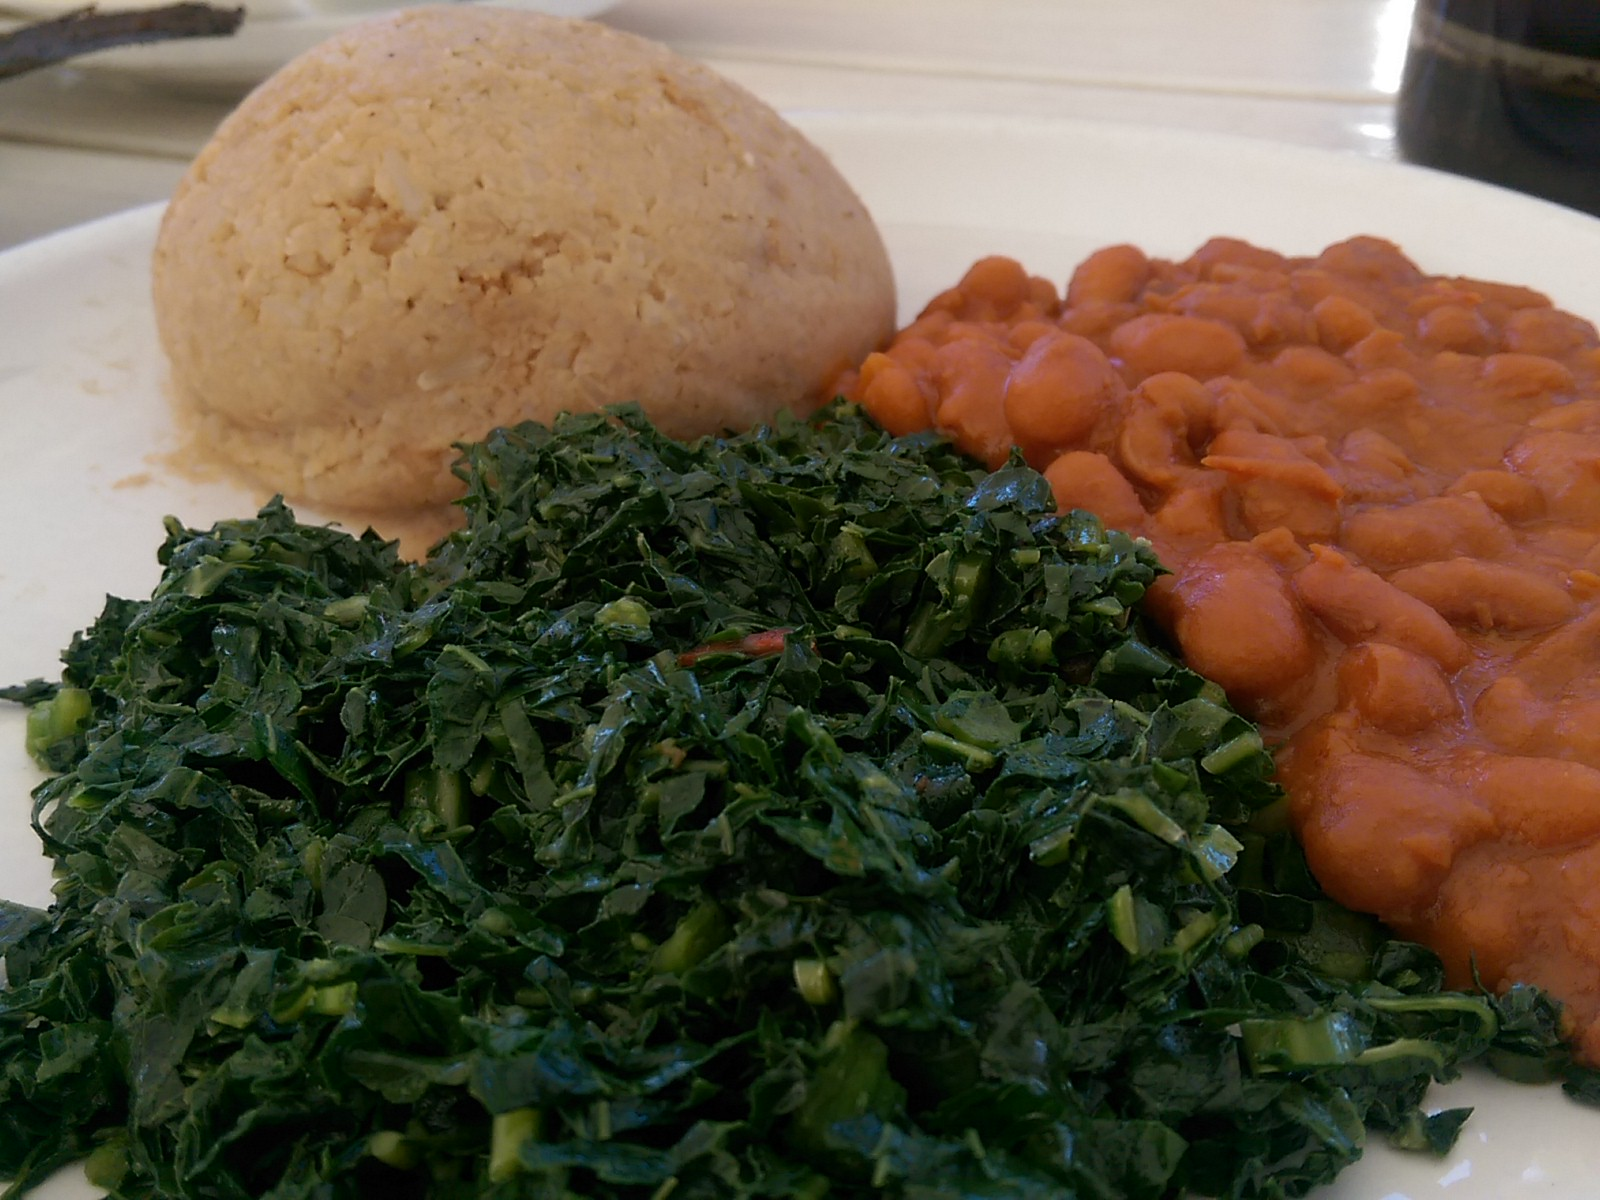 A white plate with a close up of greens and beans with a round ball of peanut rice in the background